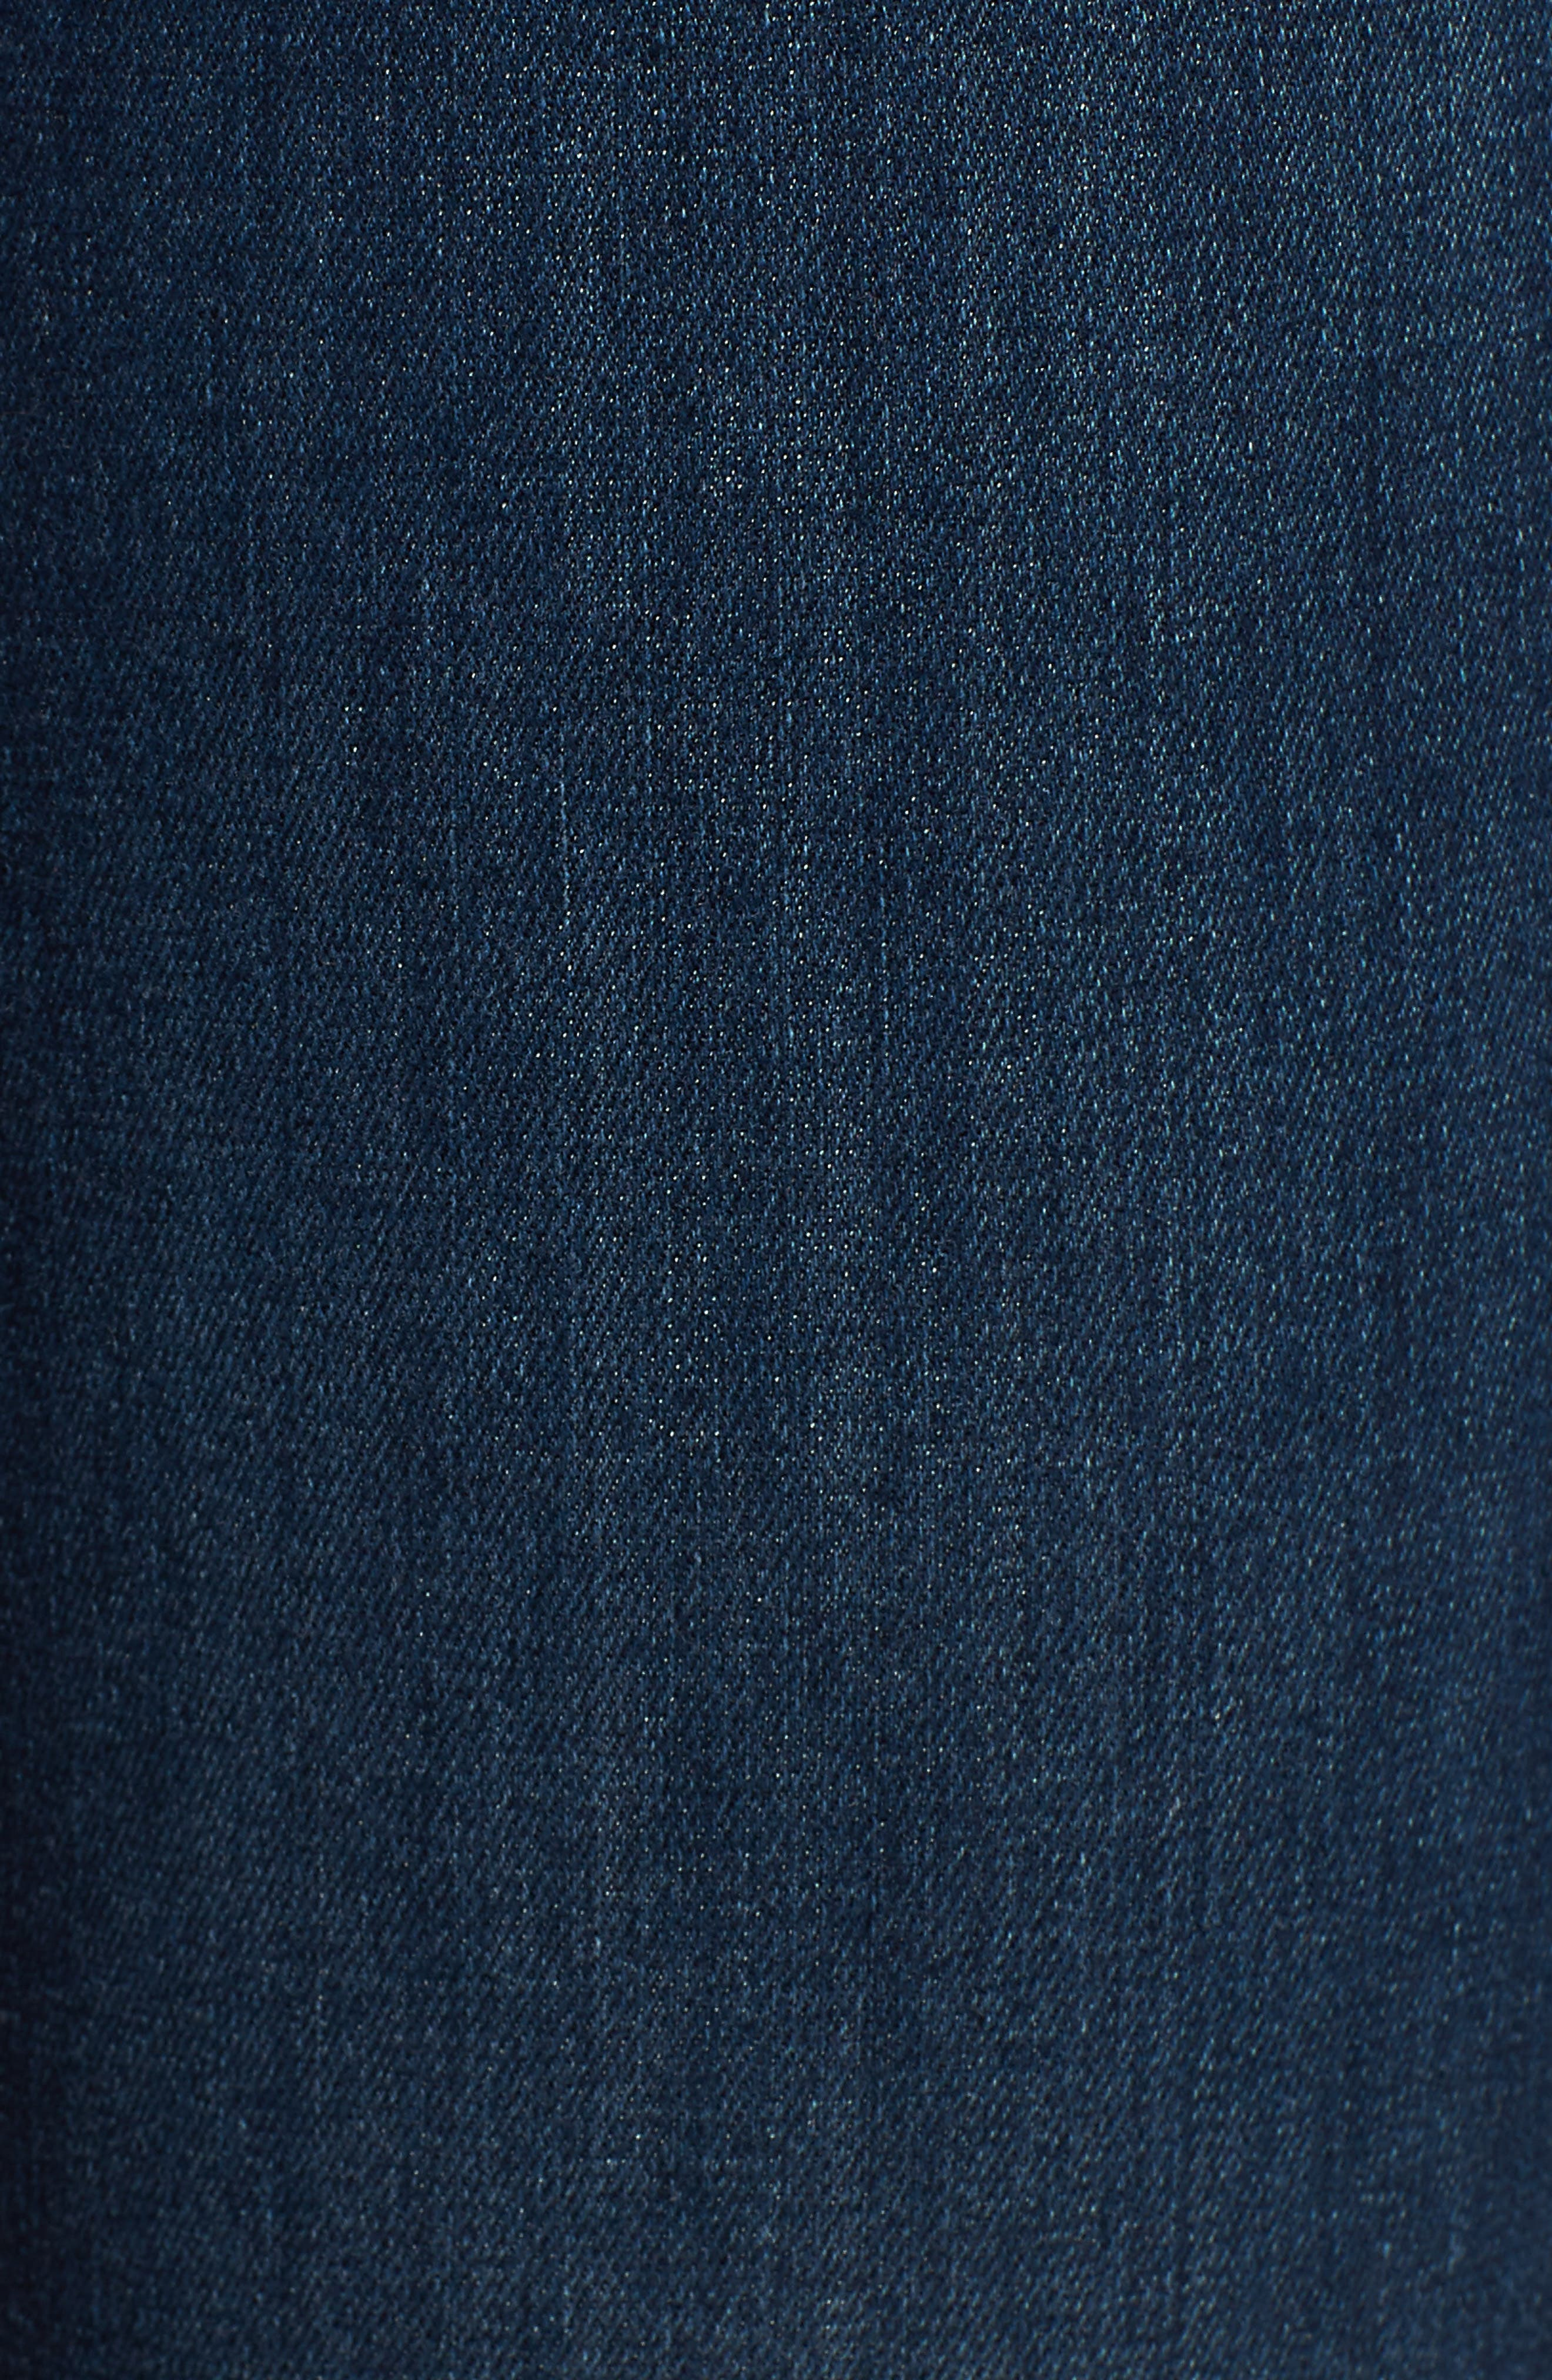 Scallop Hem Ankle Skinny Jeans,                             Alternate thumbnail 6, color,                             MIDNIGHT MOON